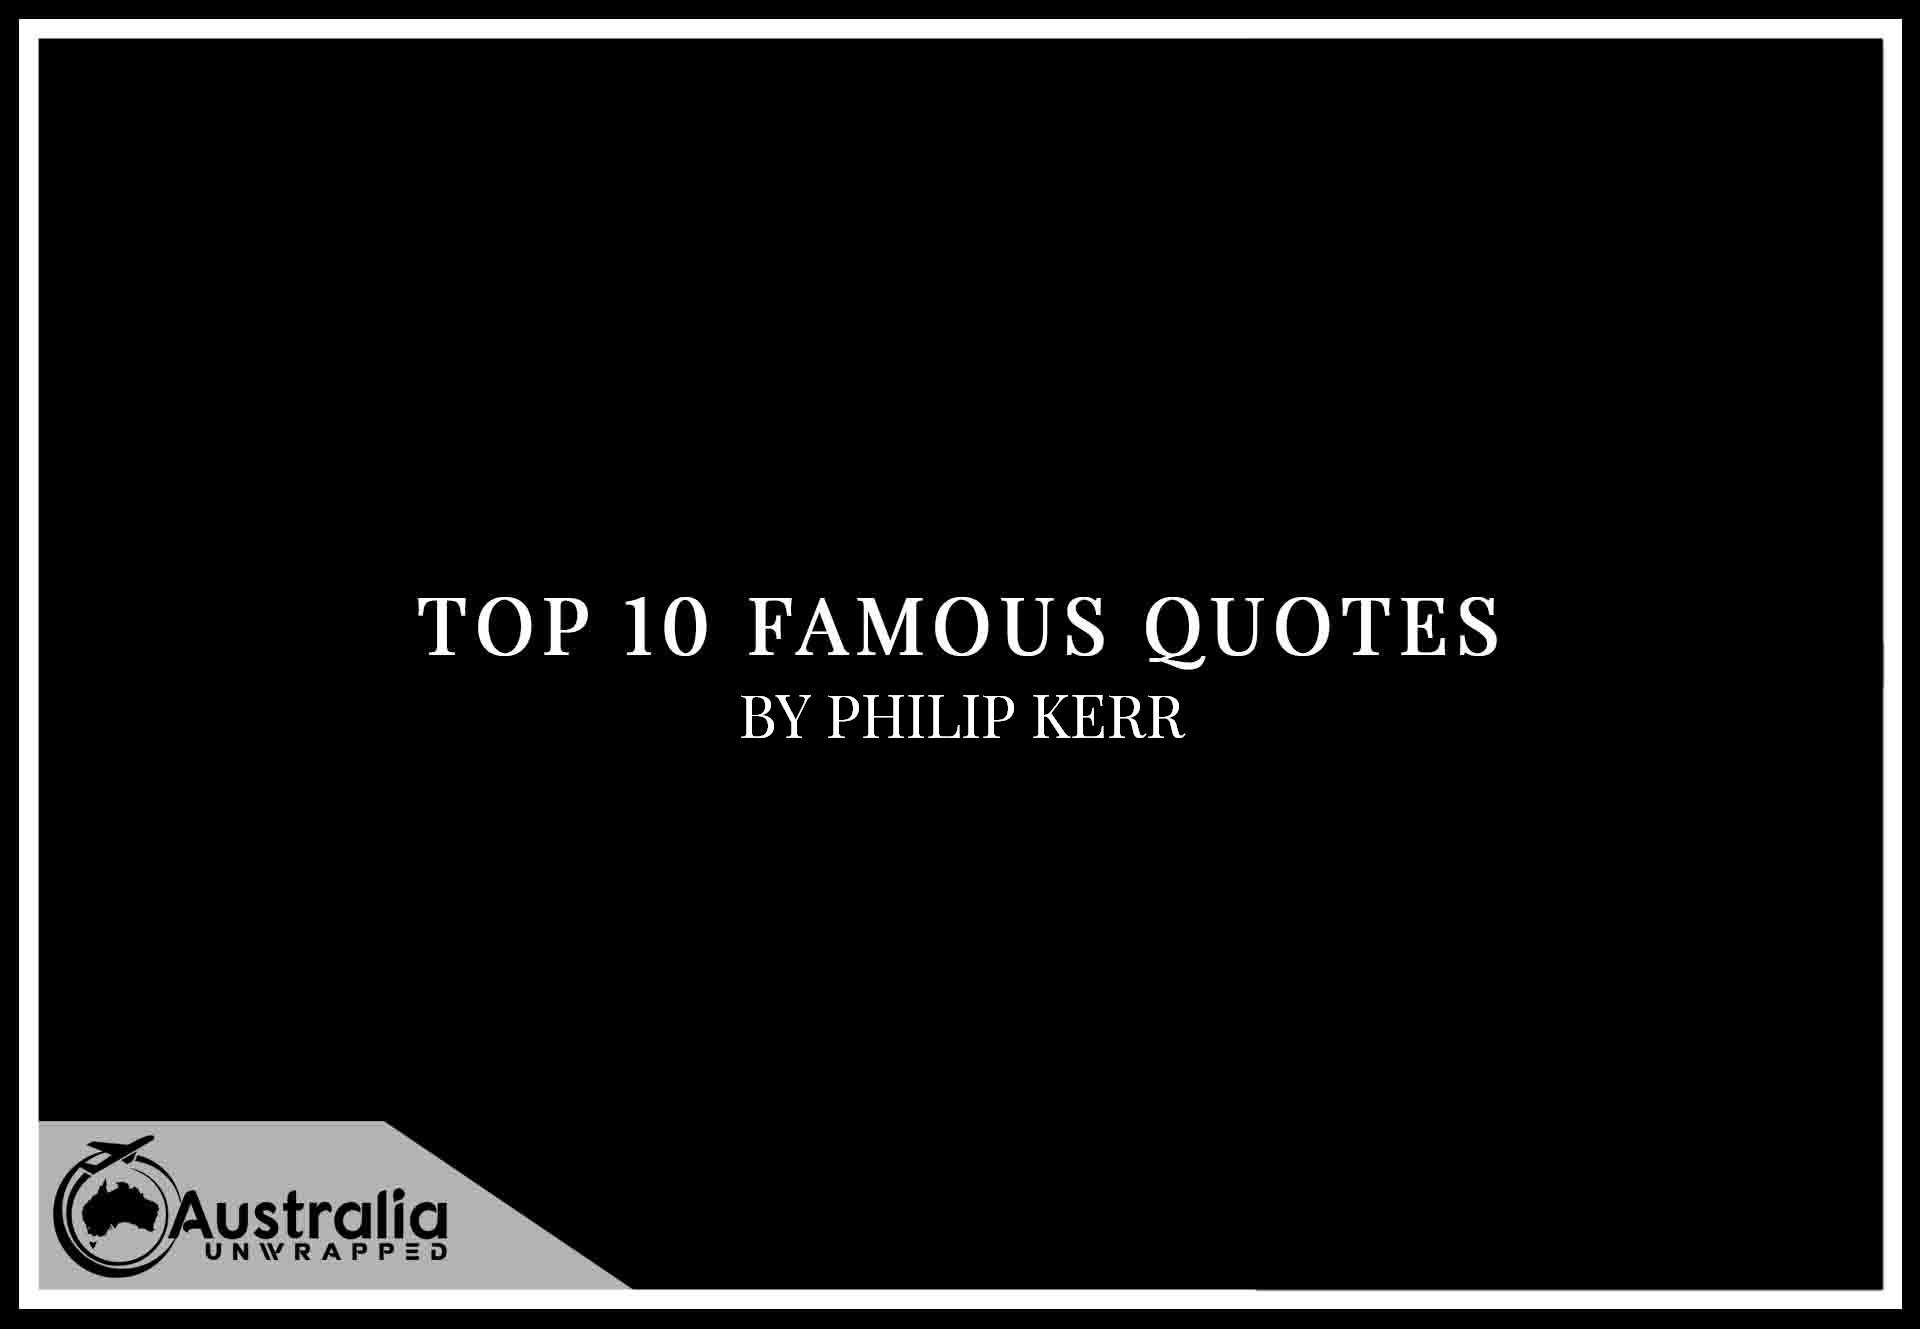 Top 10 Famous Quotes by Author Philip Kerr